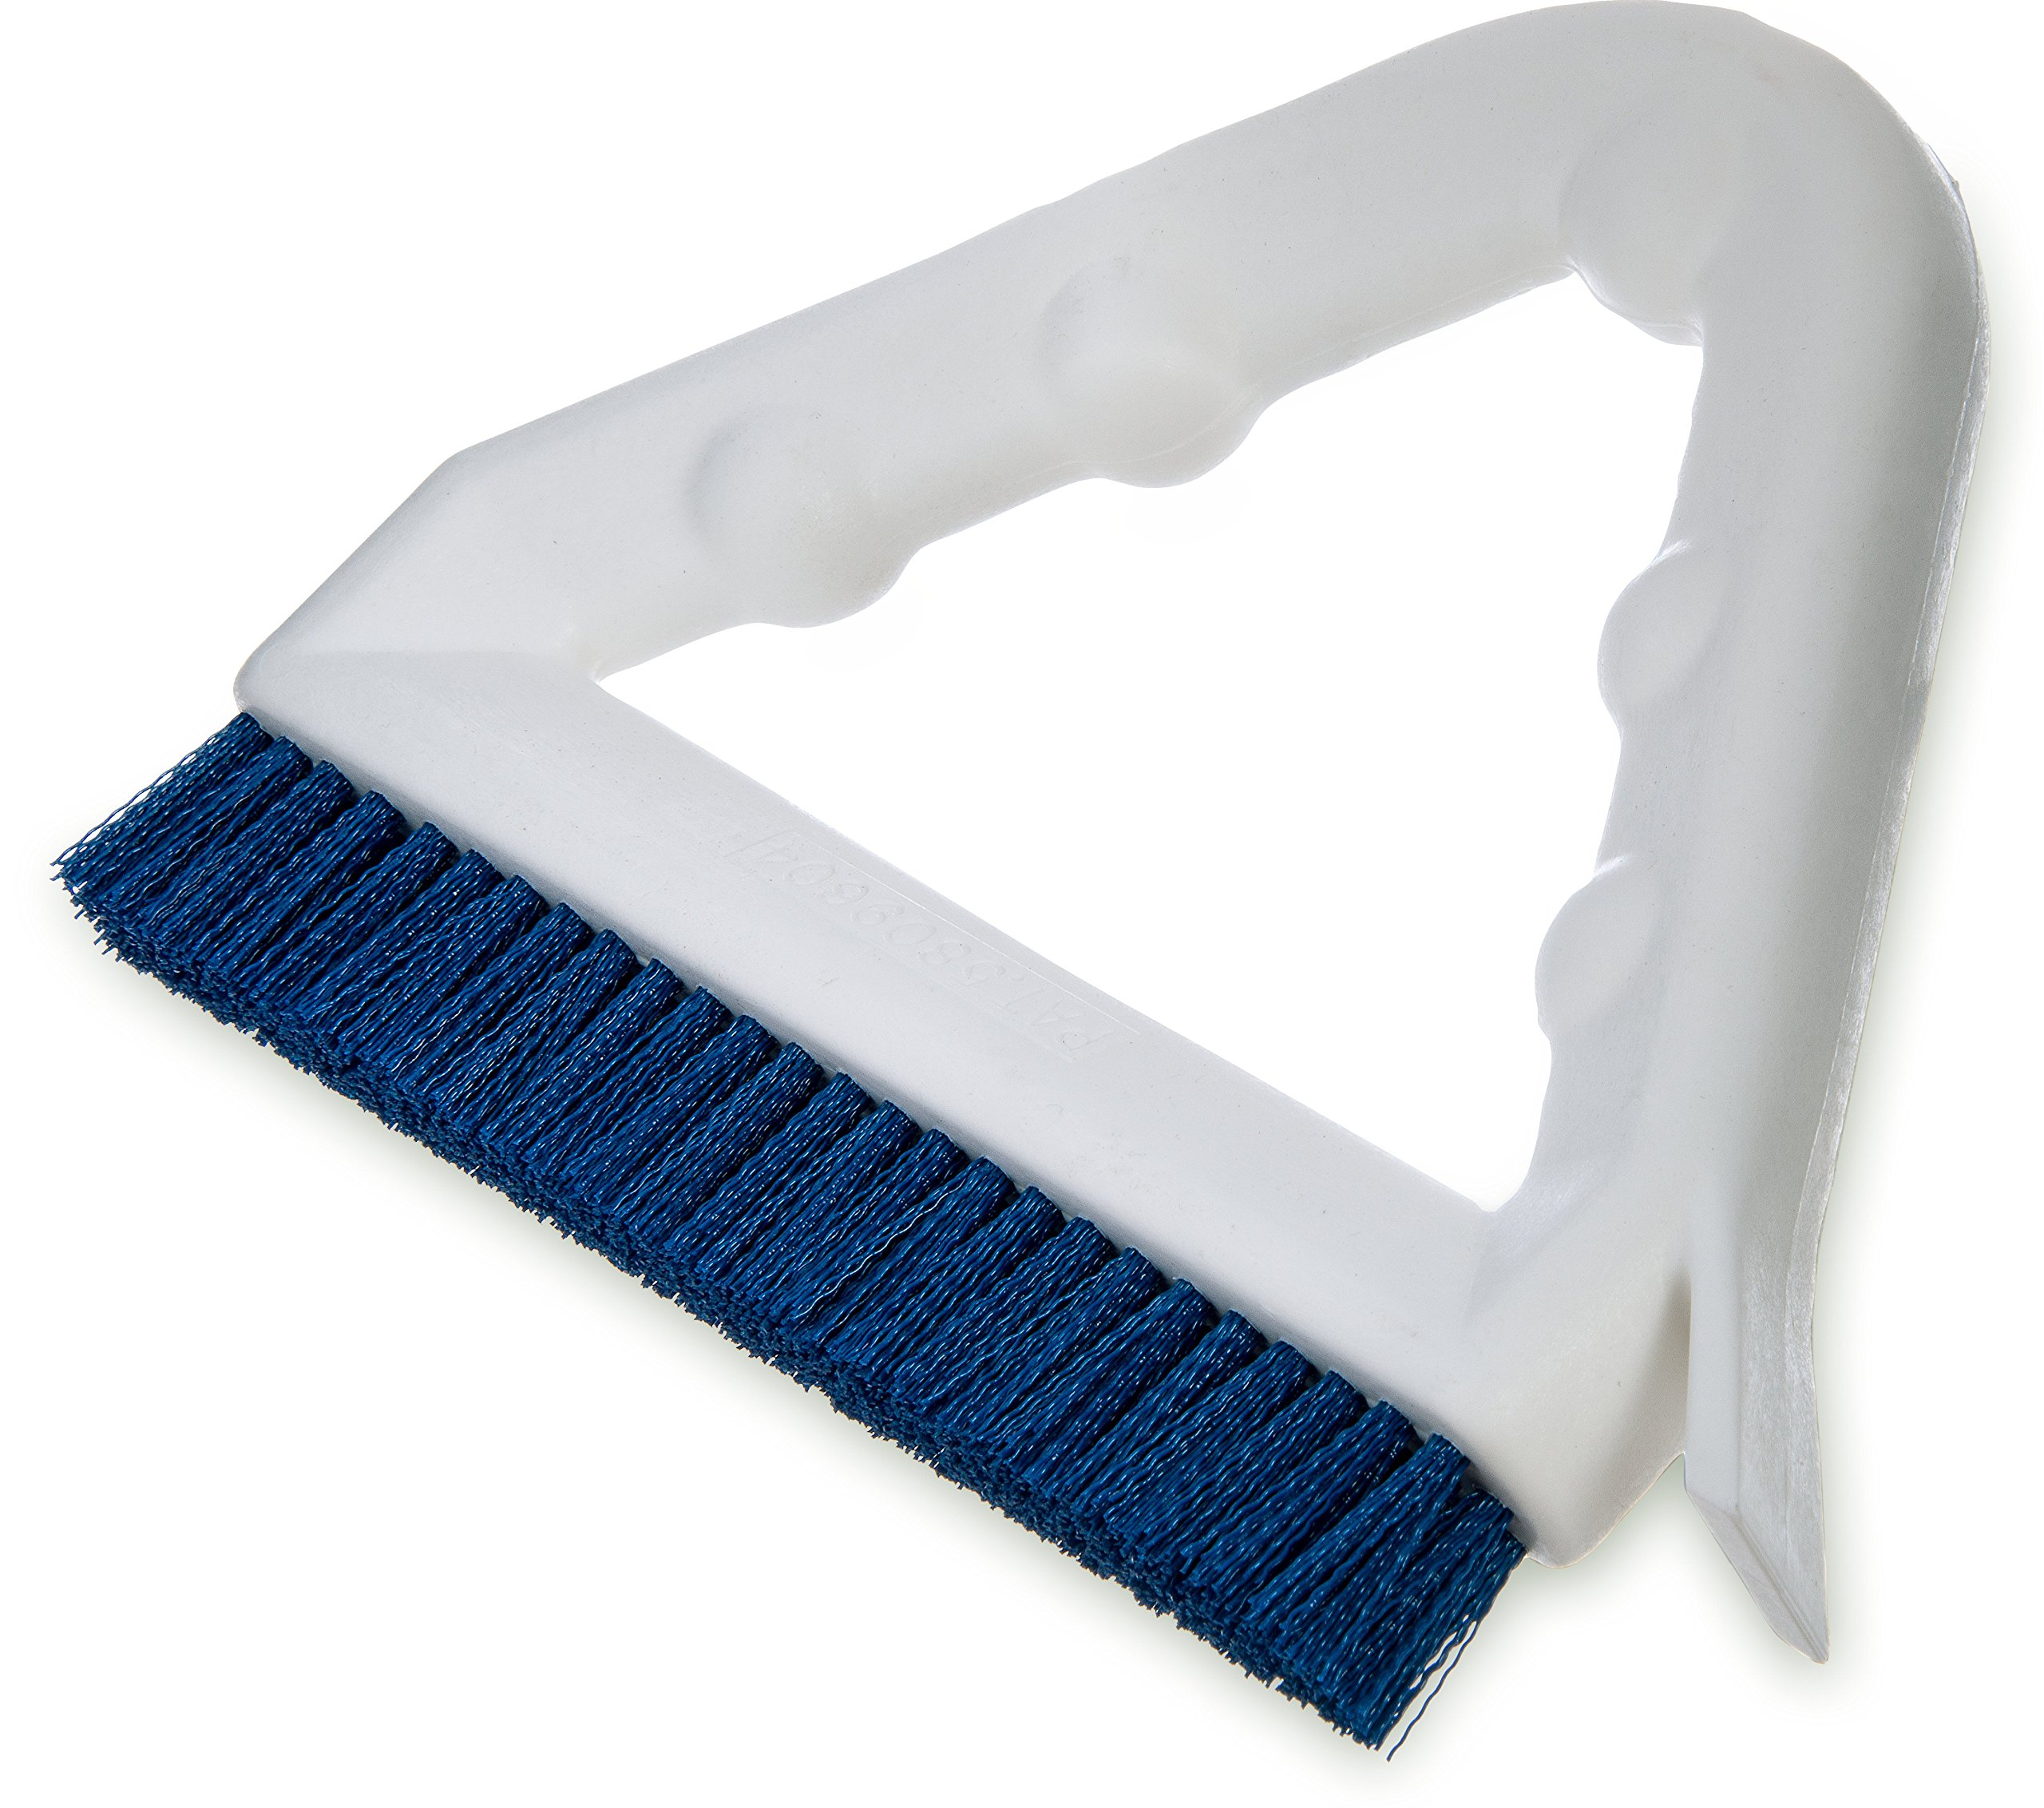 Carlisle 4132314 Sparta Tile and Grout Brush with Scraper, 9'', Blue by Carlisle (Image #1)